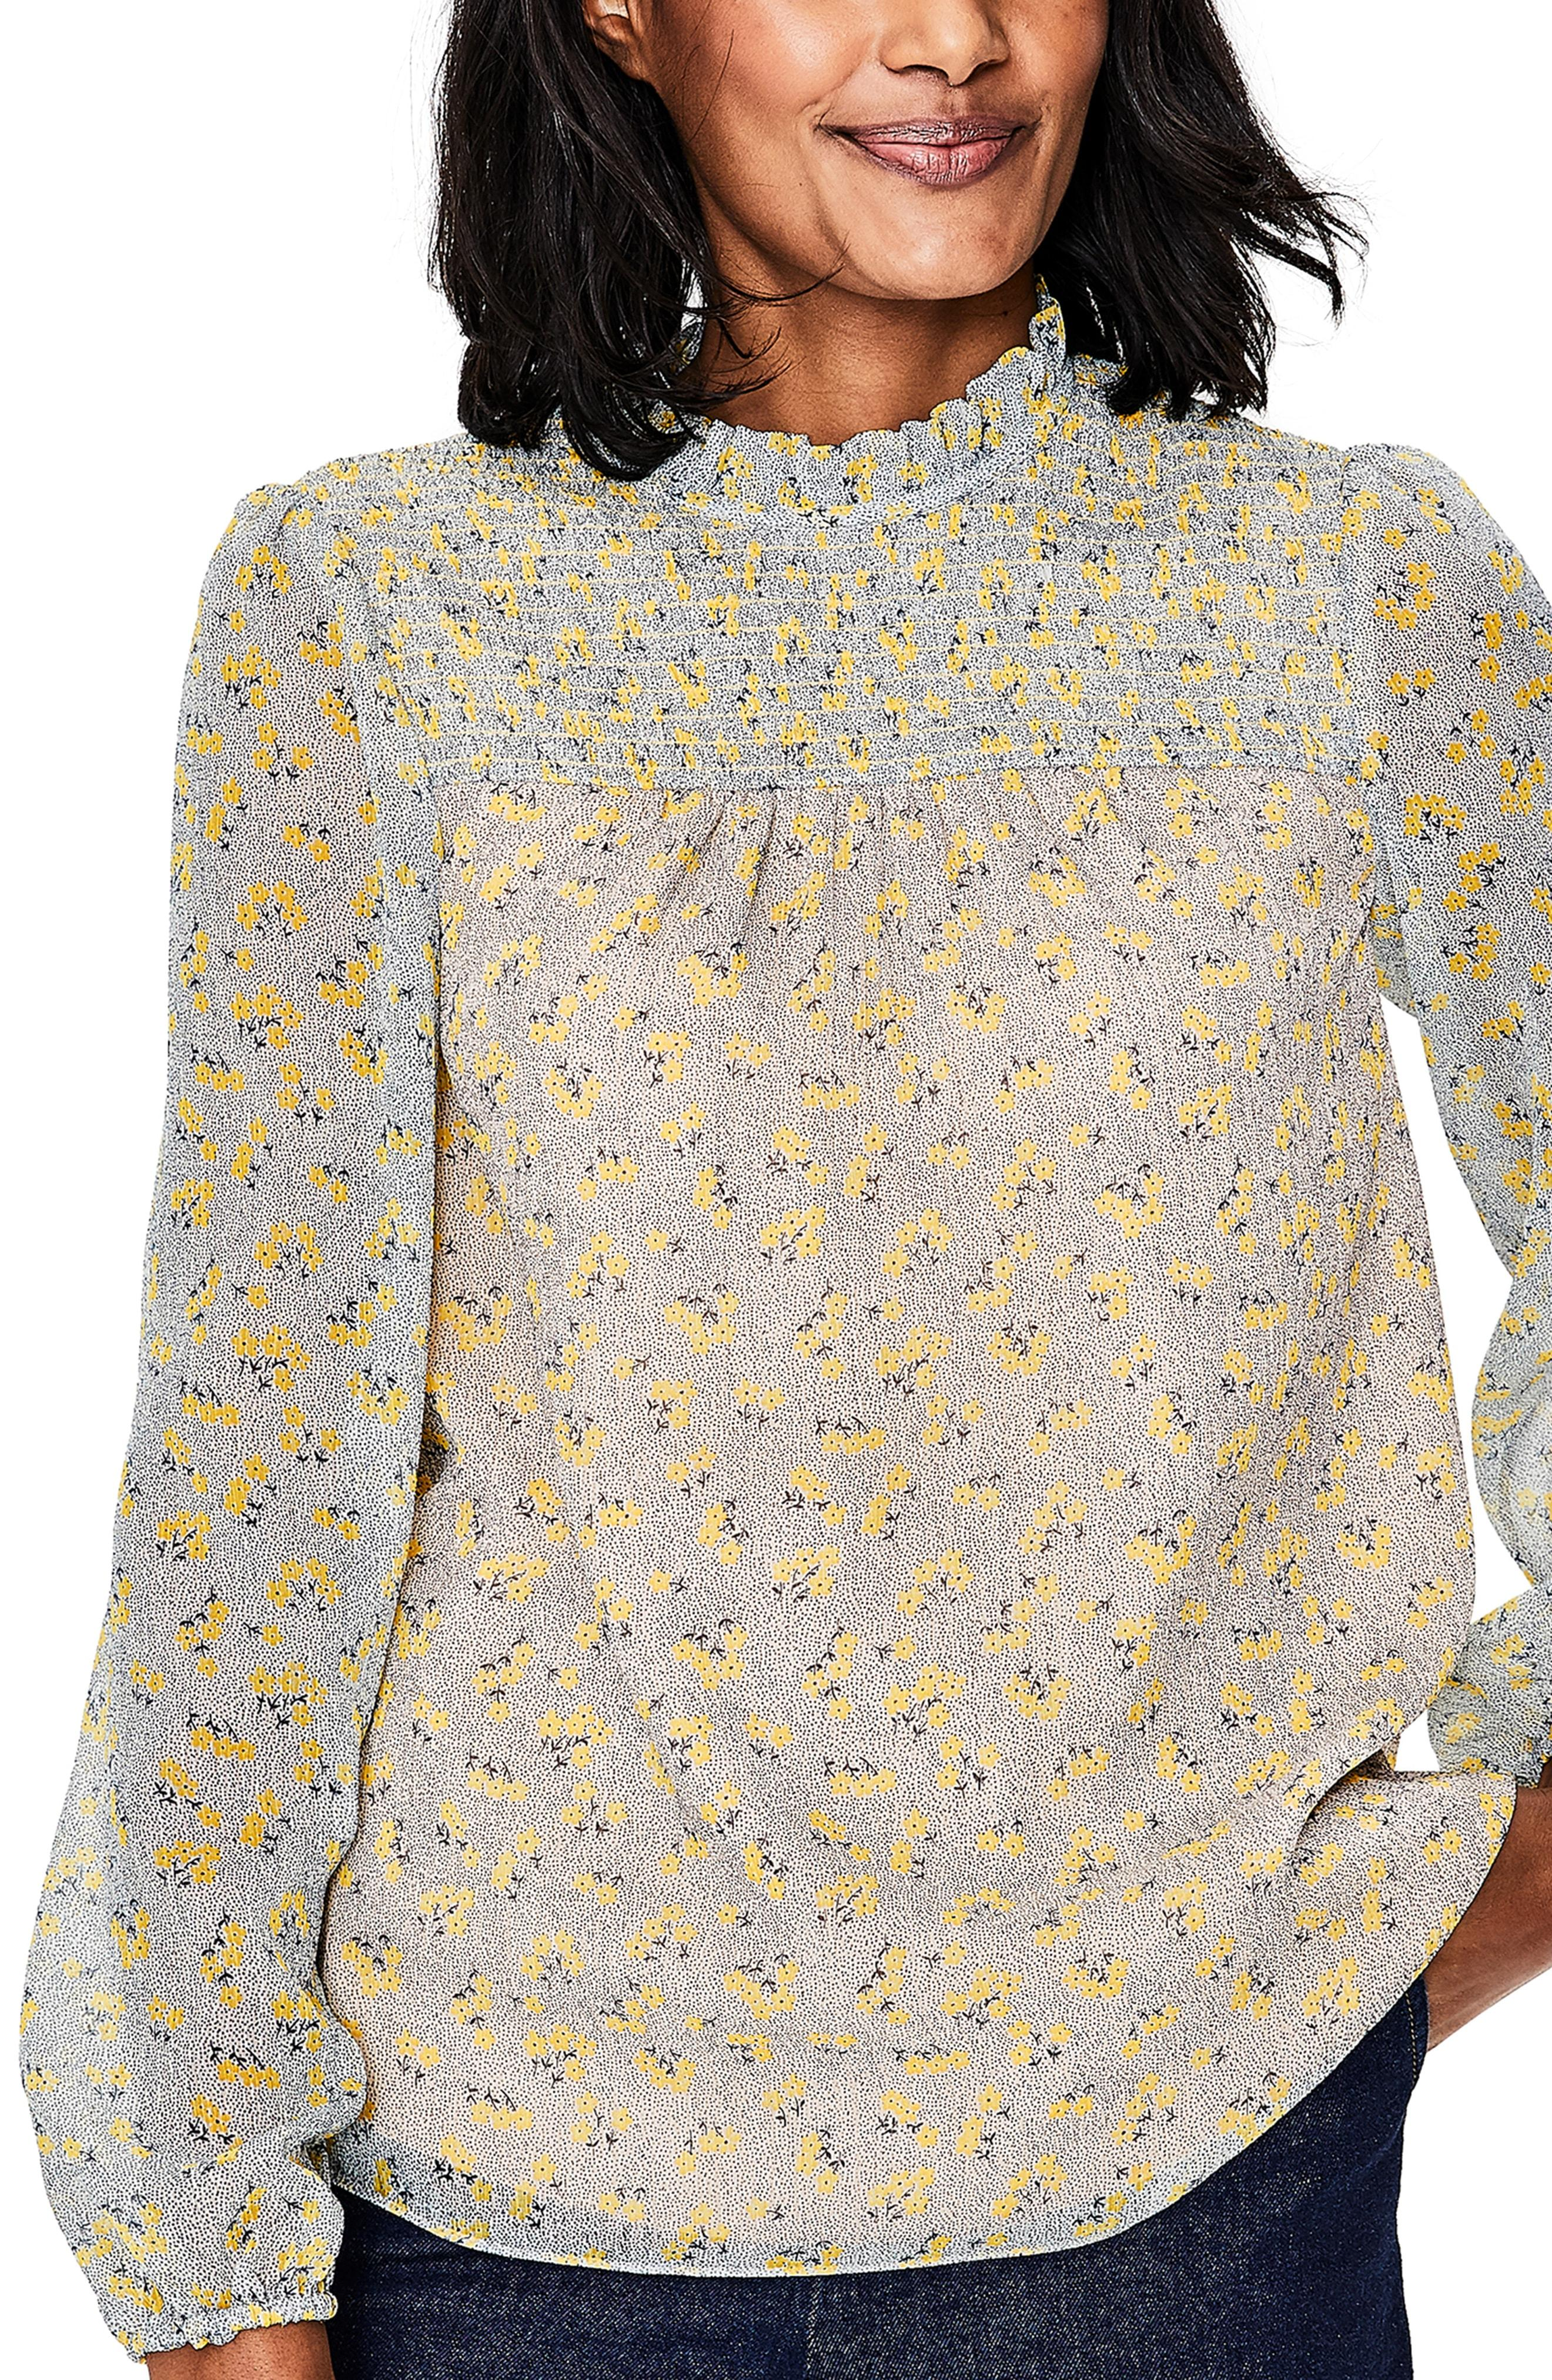 184a81f01070a Lyst - Boden Janie Floral Top in White